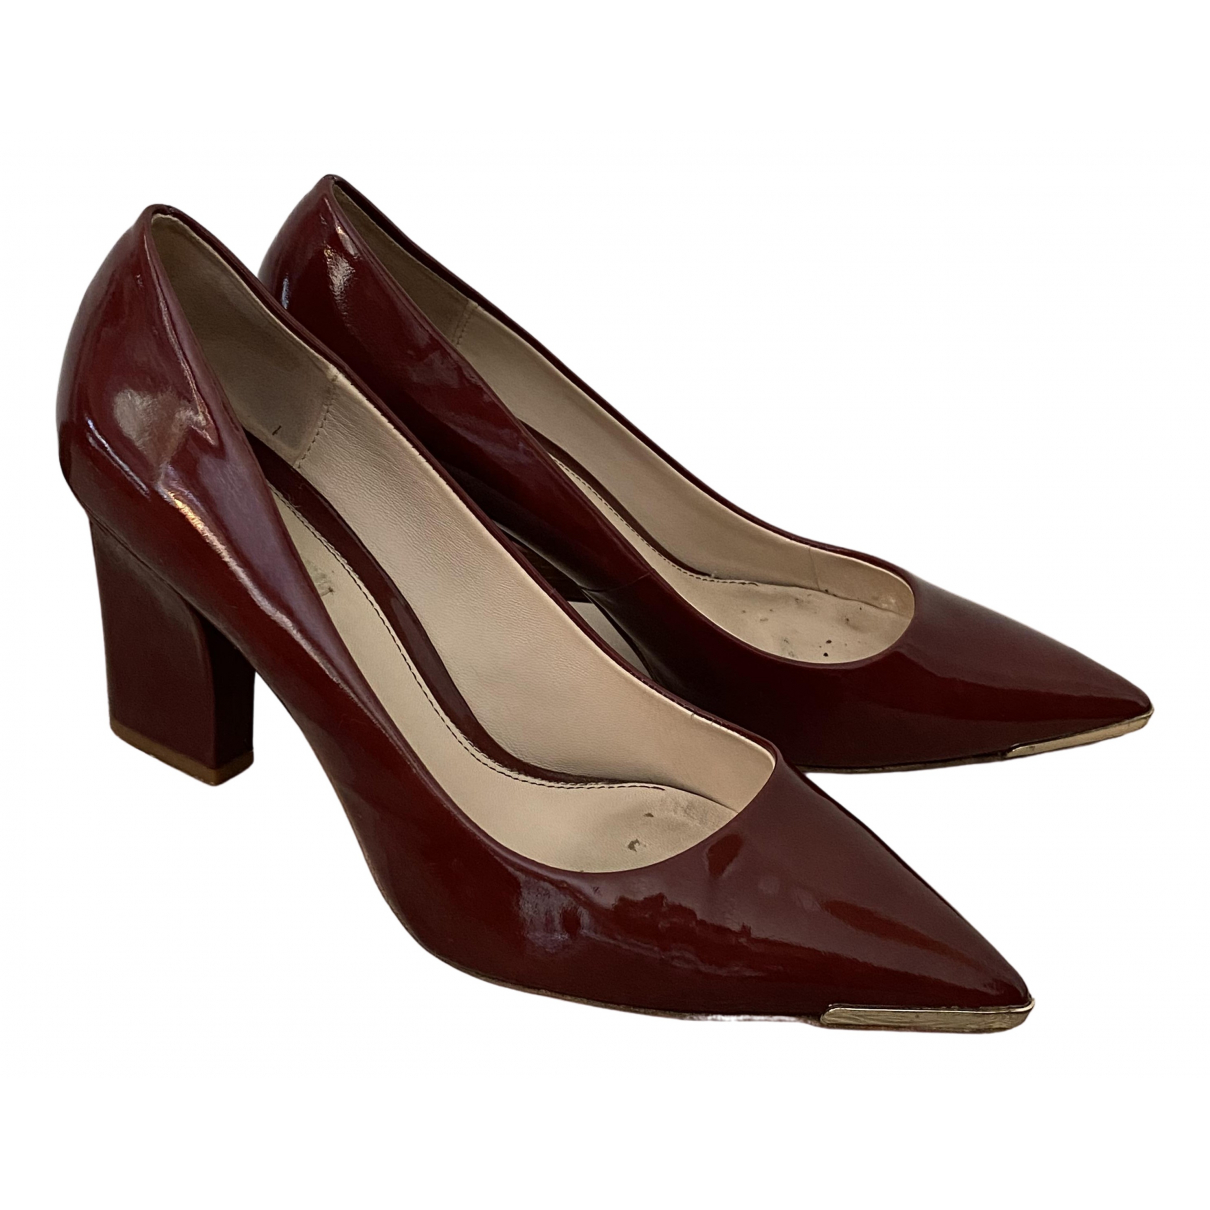 Uterque \N Burgundy Patent leather Heels for Women 41 EU